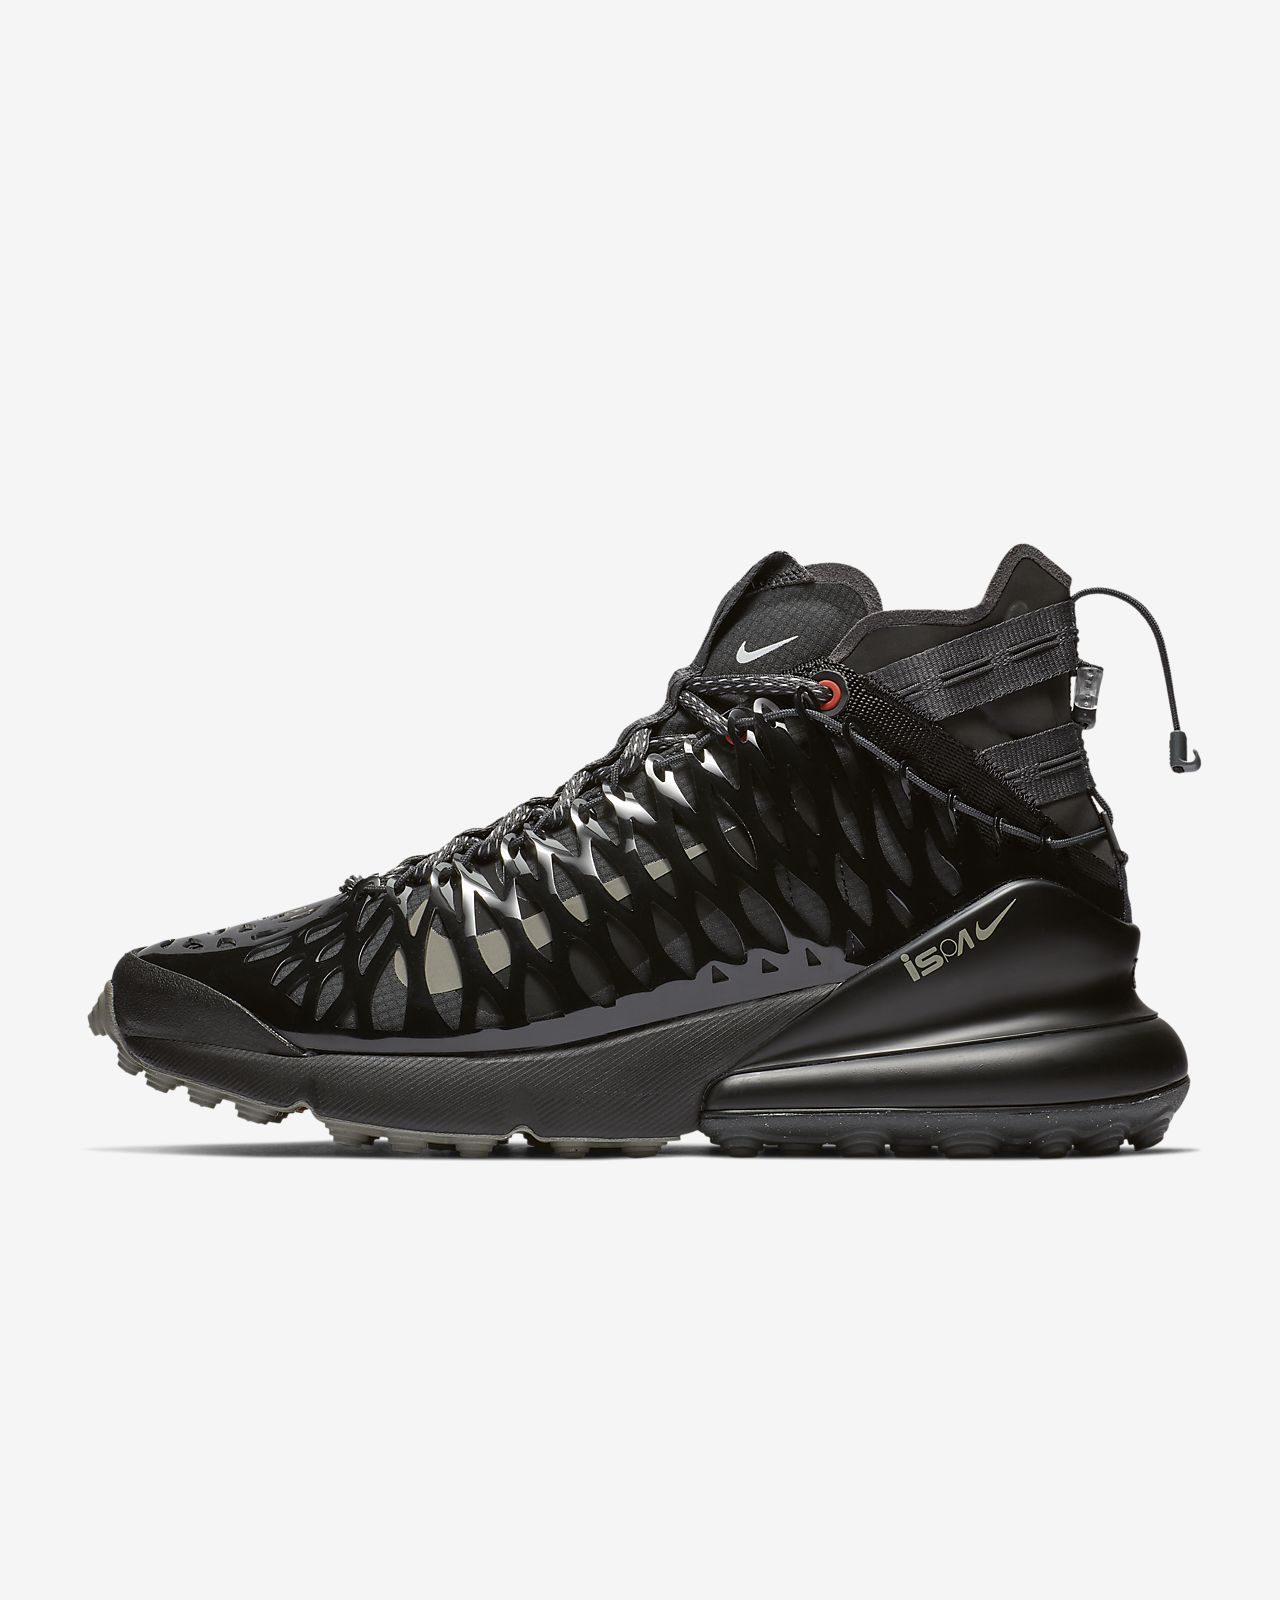 Nike ISPA Air Max 270 Men's Shoe